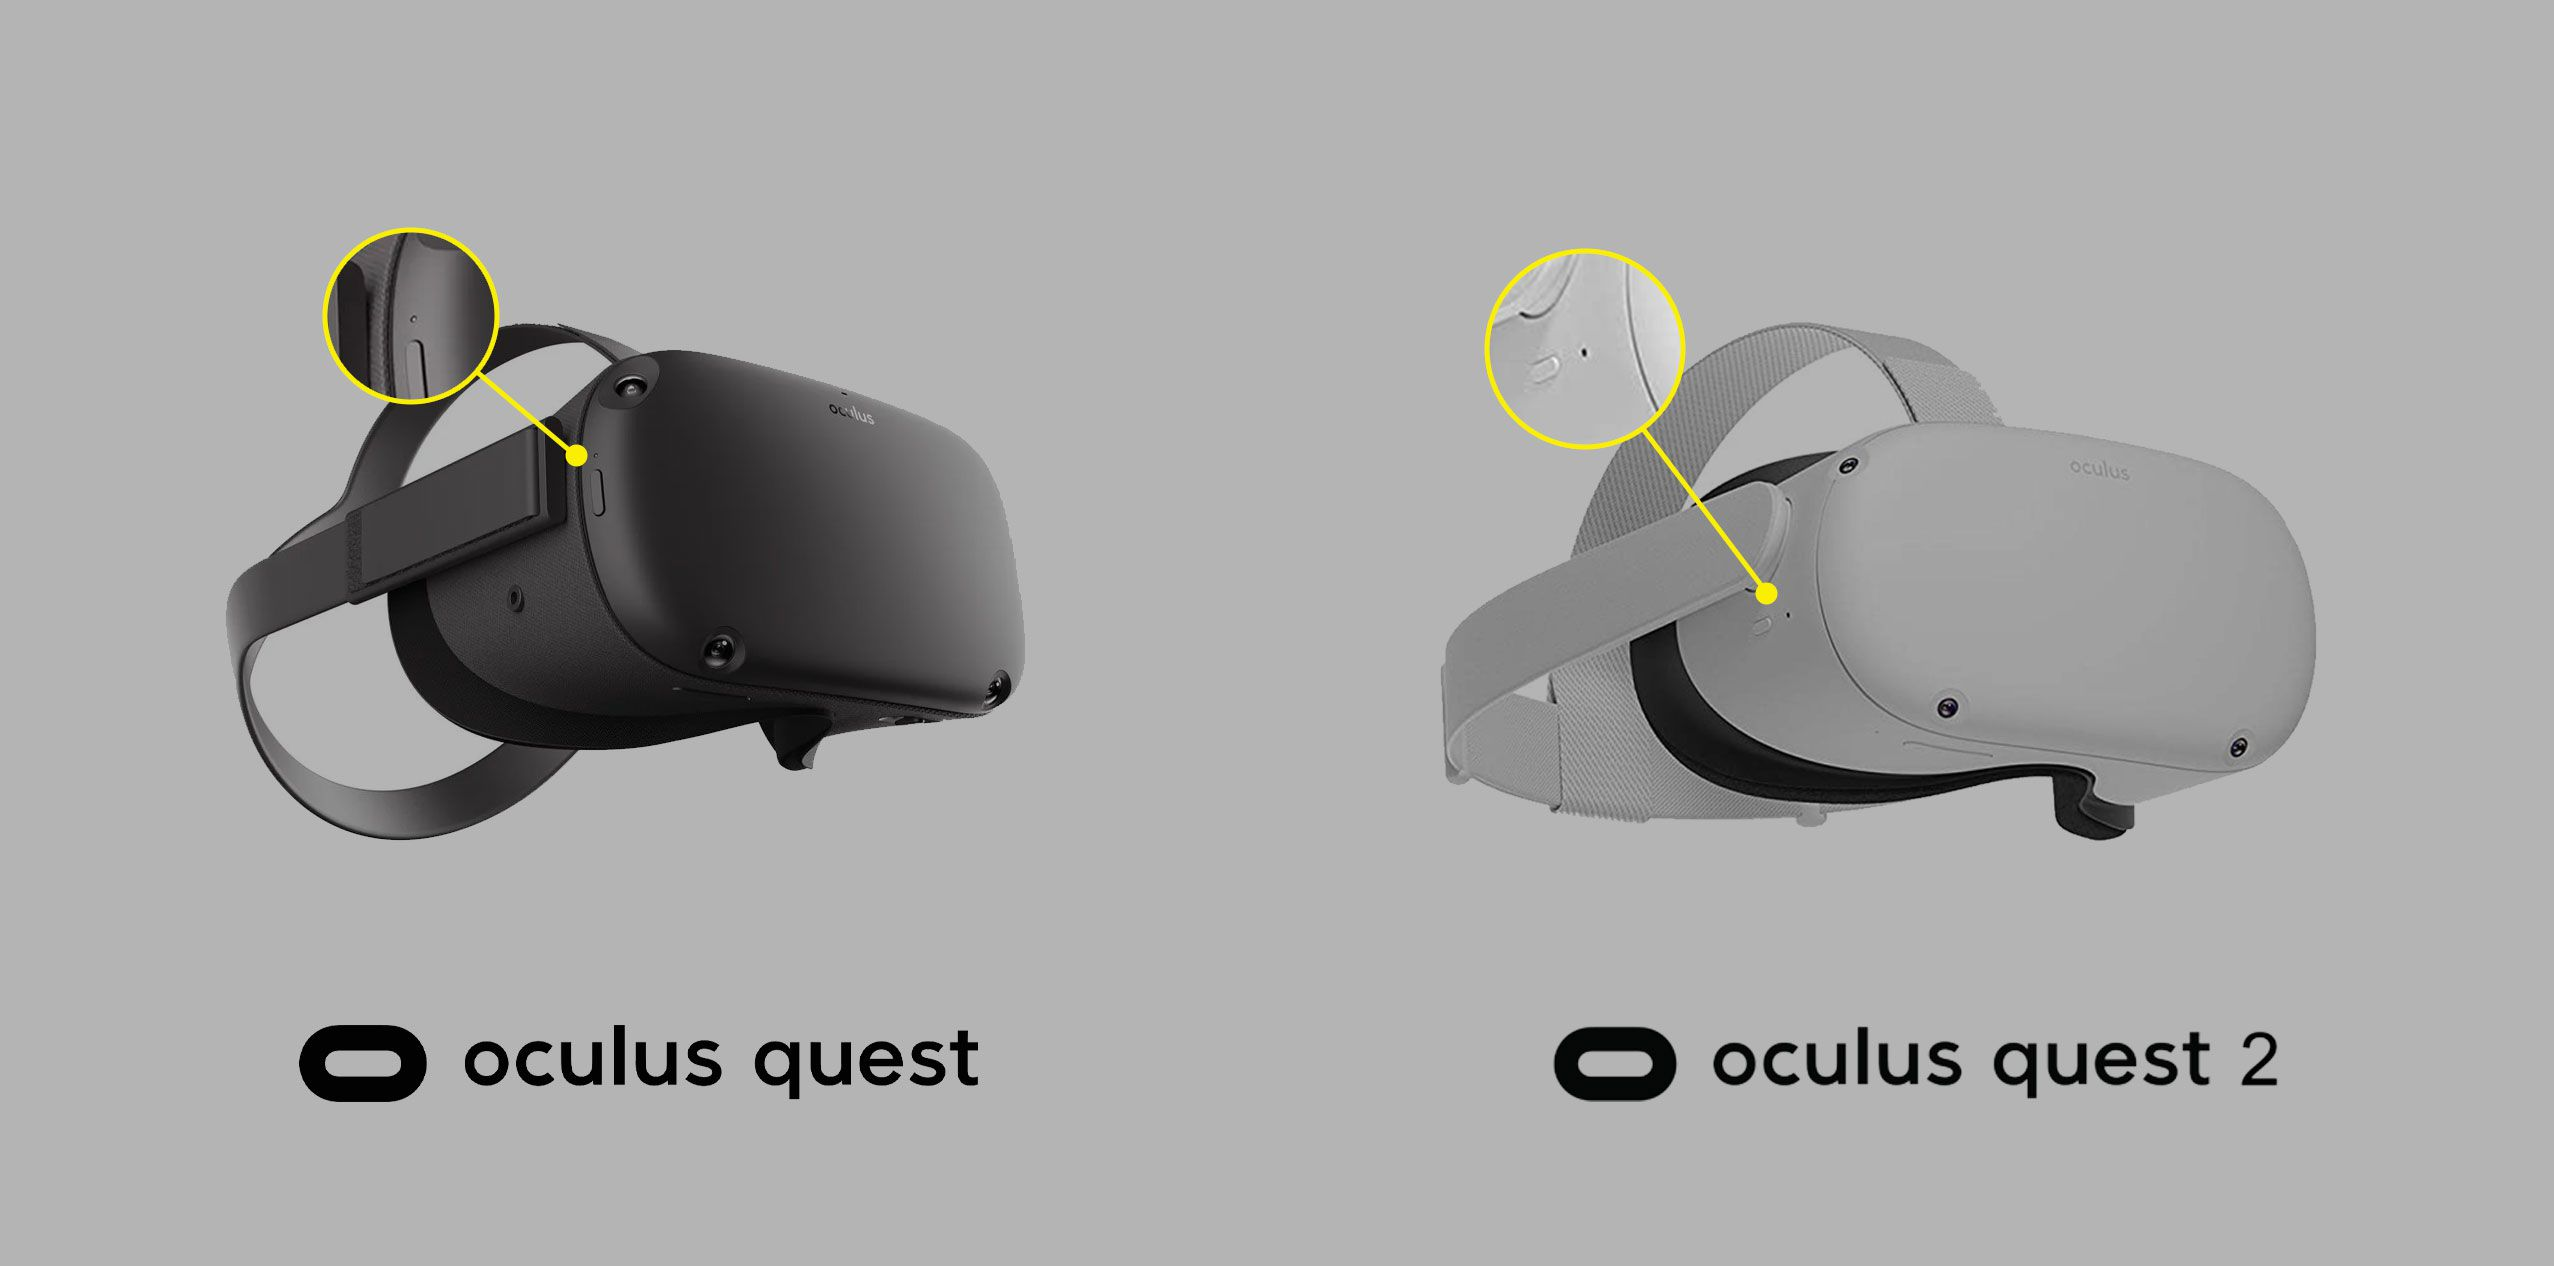 The indicator lights on Oculus Quest and Quest 2 VR headsets